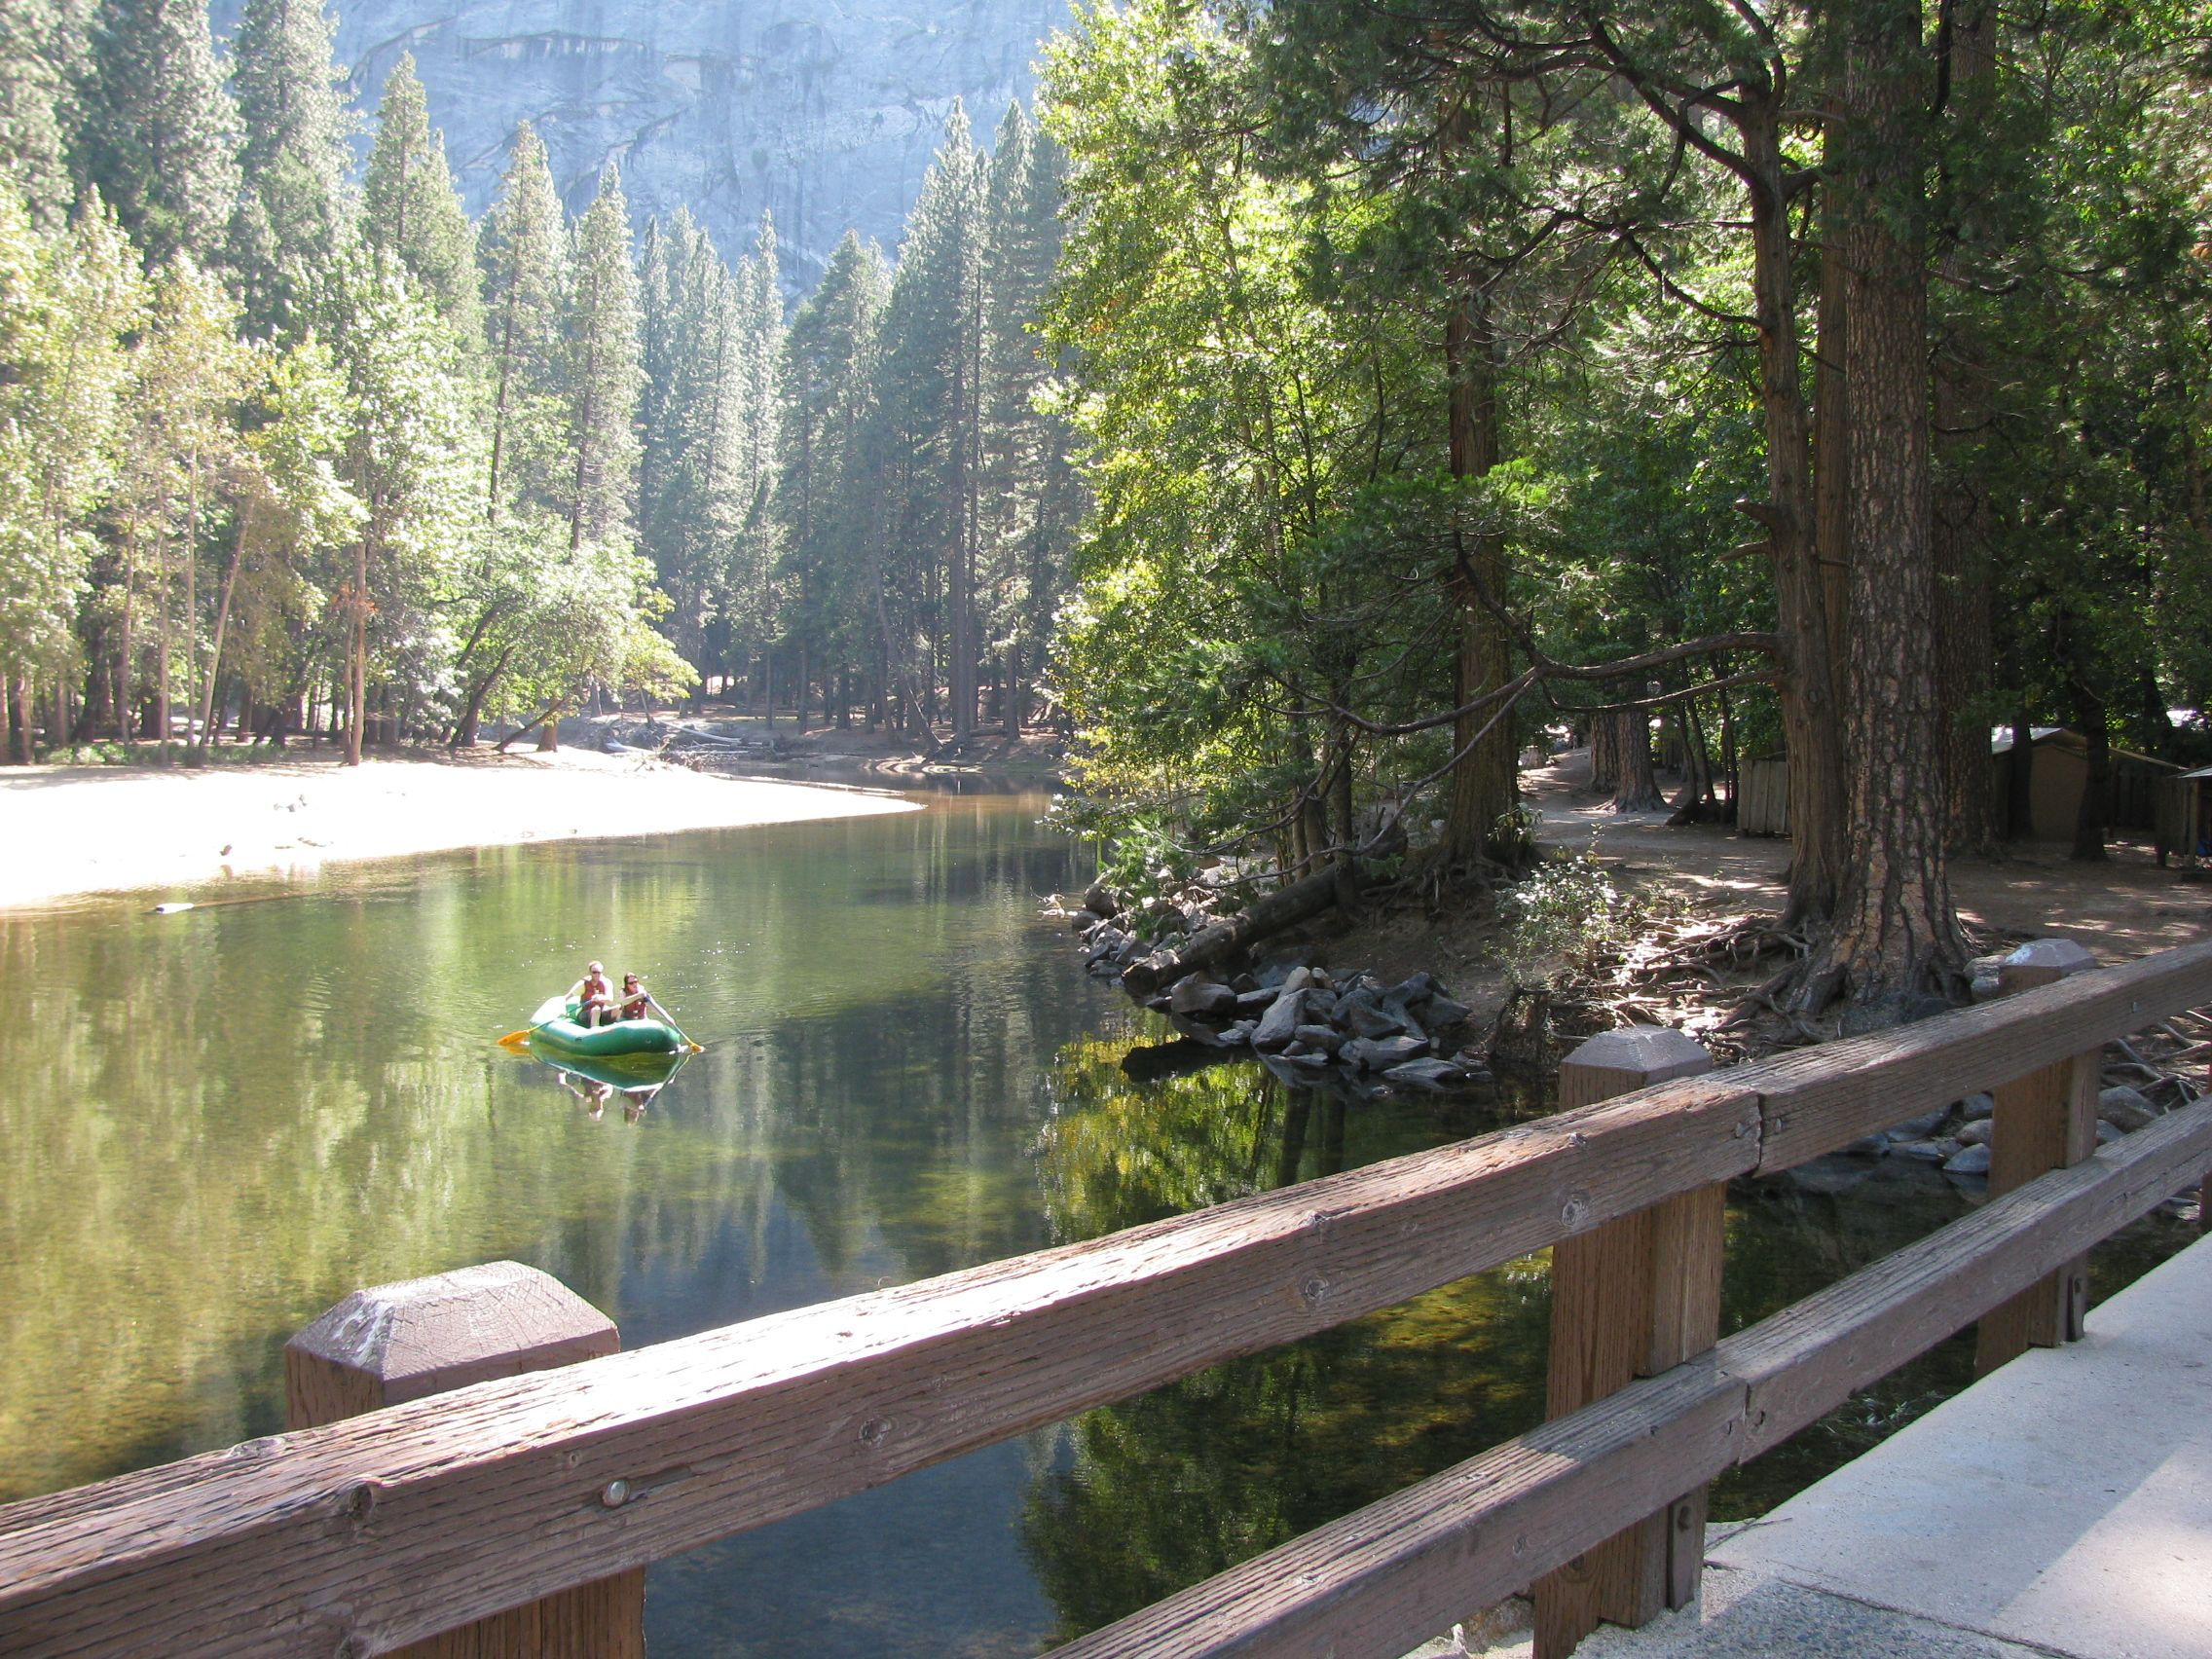 #KpriGoPro Floating down the Merced past Housekeeping Camp, Yosemite Valley.  It doesn't get much better than this.